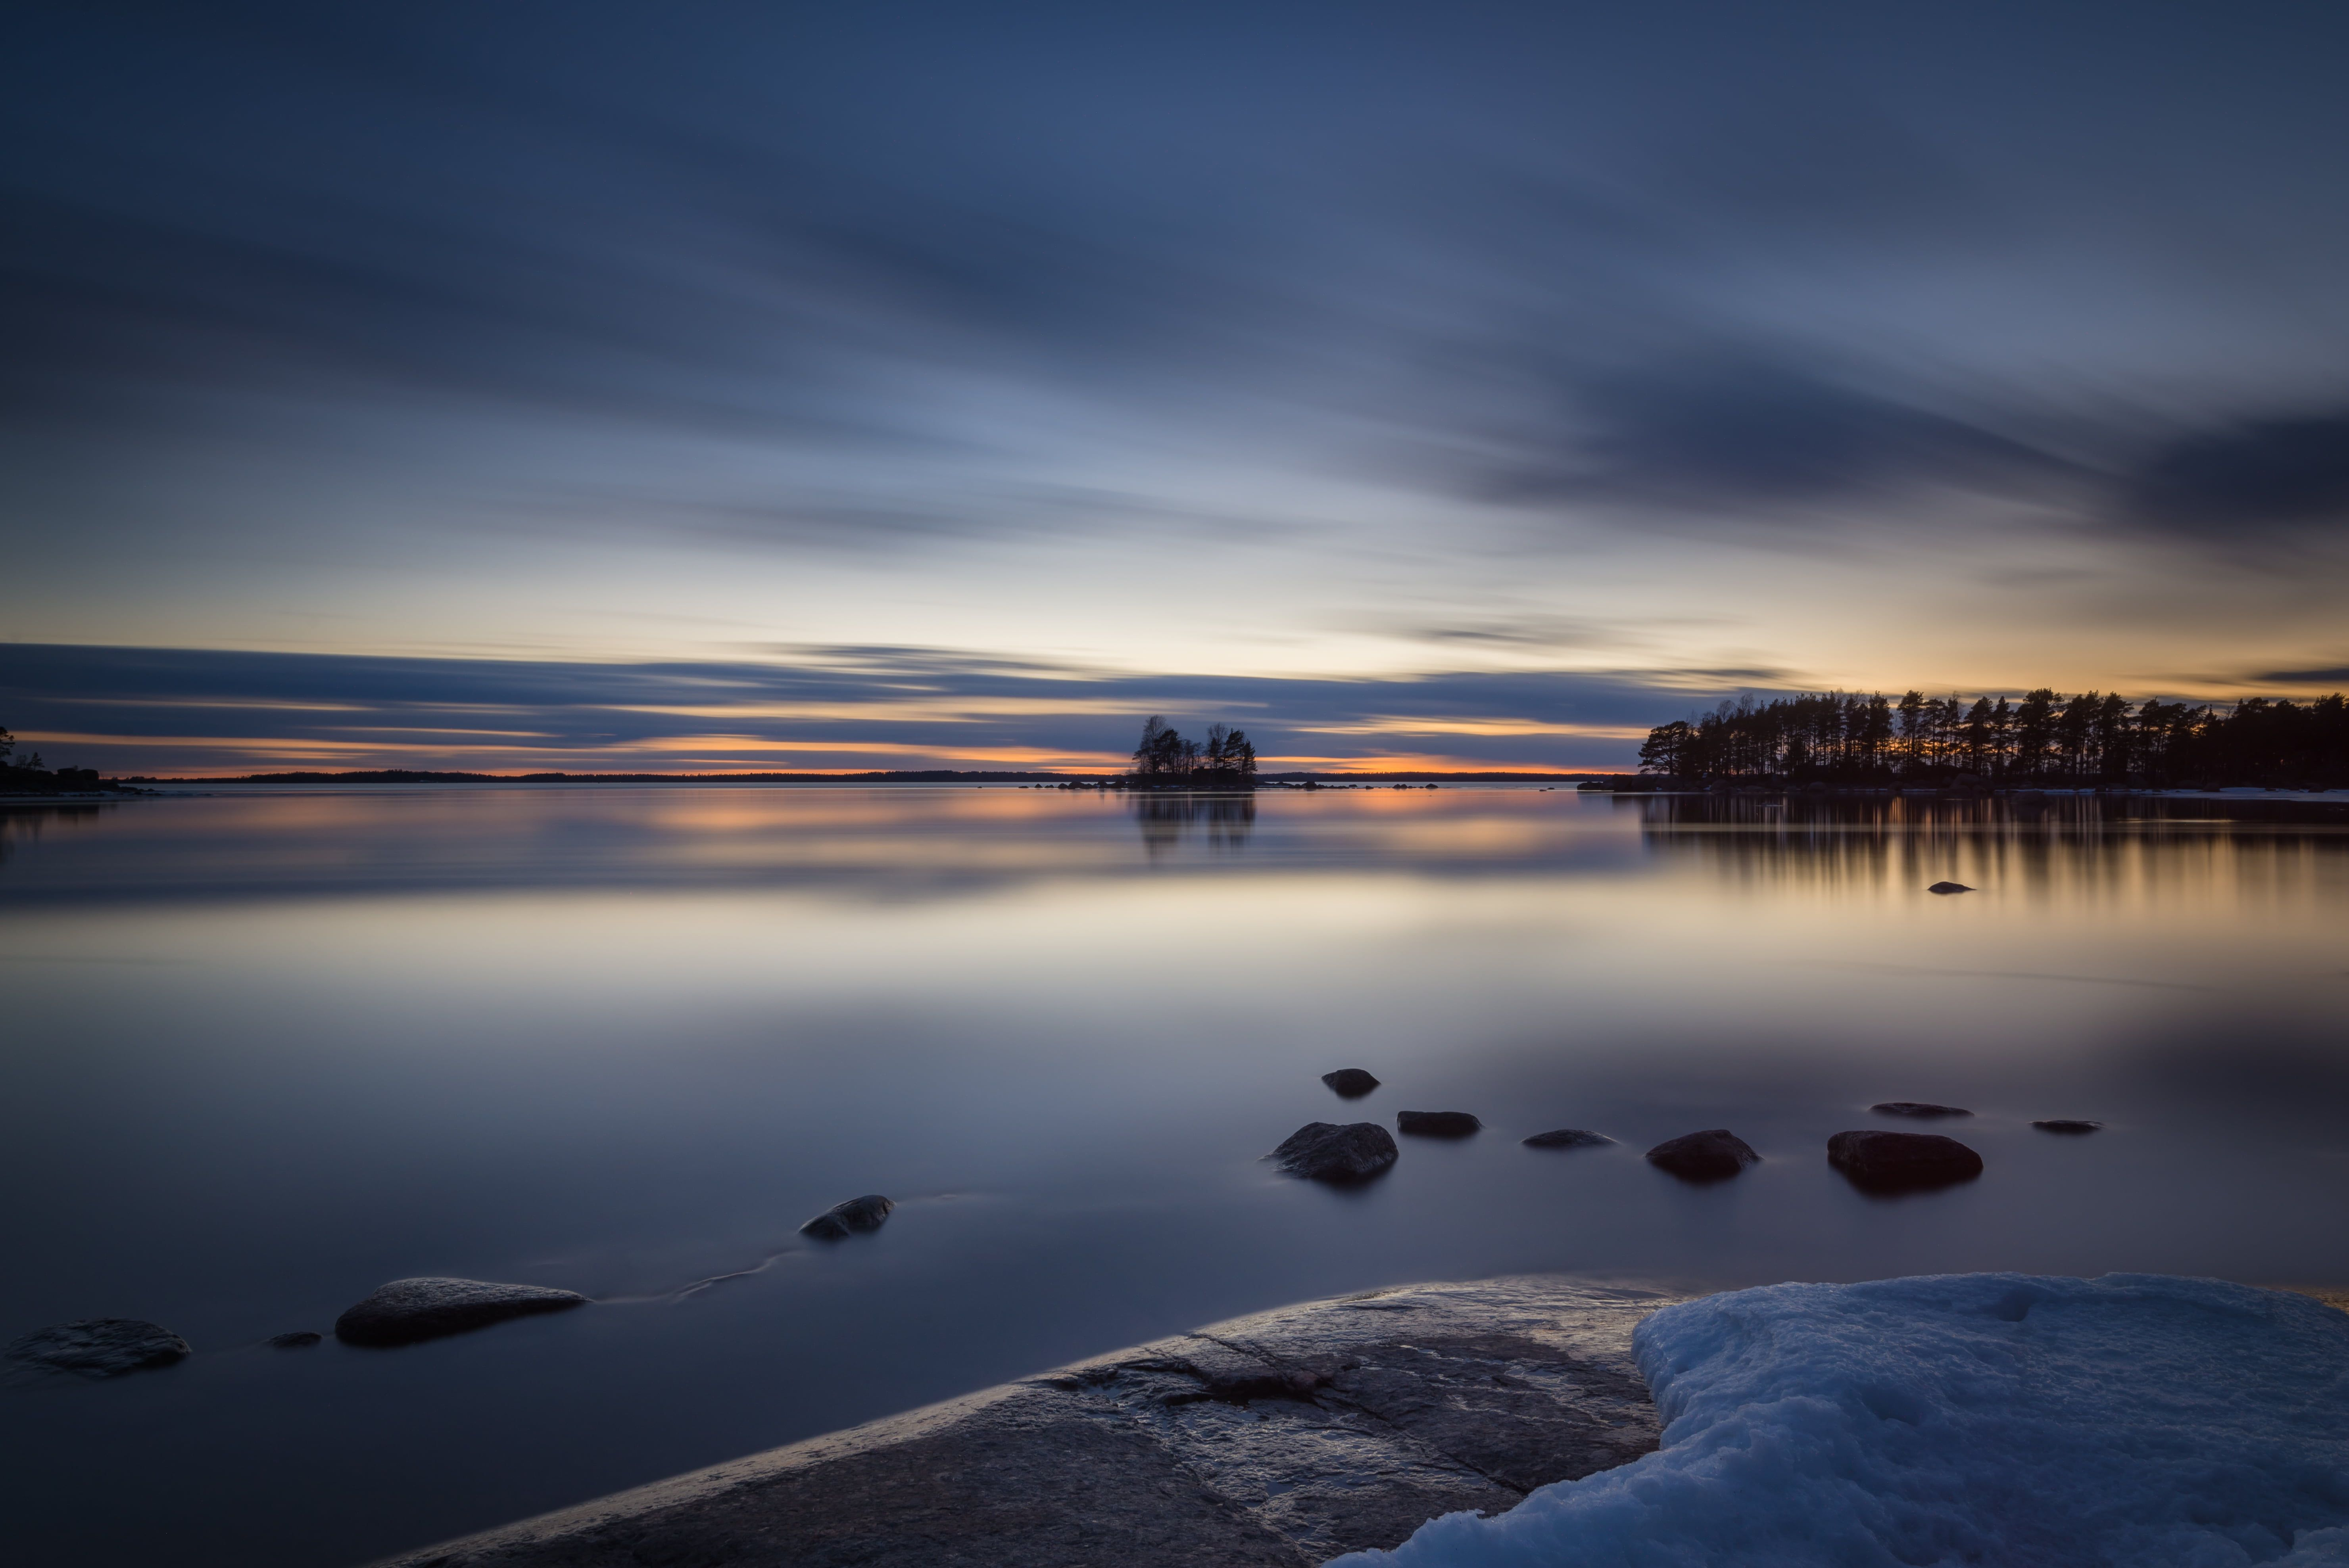 Calm Body Of Water During Sunset Serene Calm Body Of Water Sunset Kotka Finland Night Evening Le Long Expos Panoramic Photography Water Poster Serenity